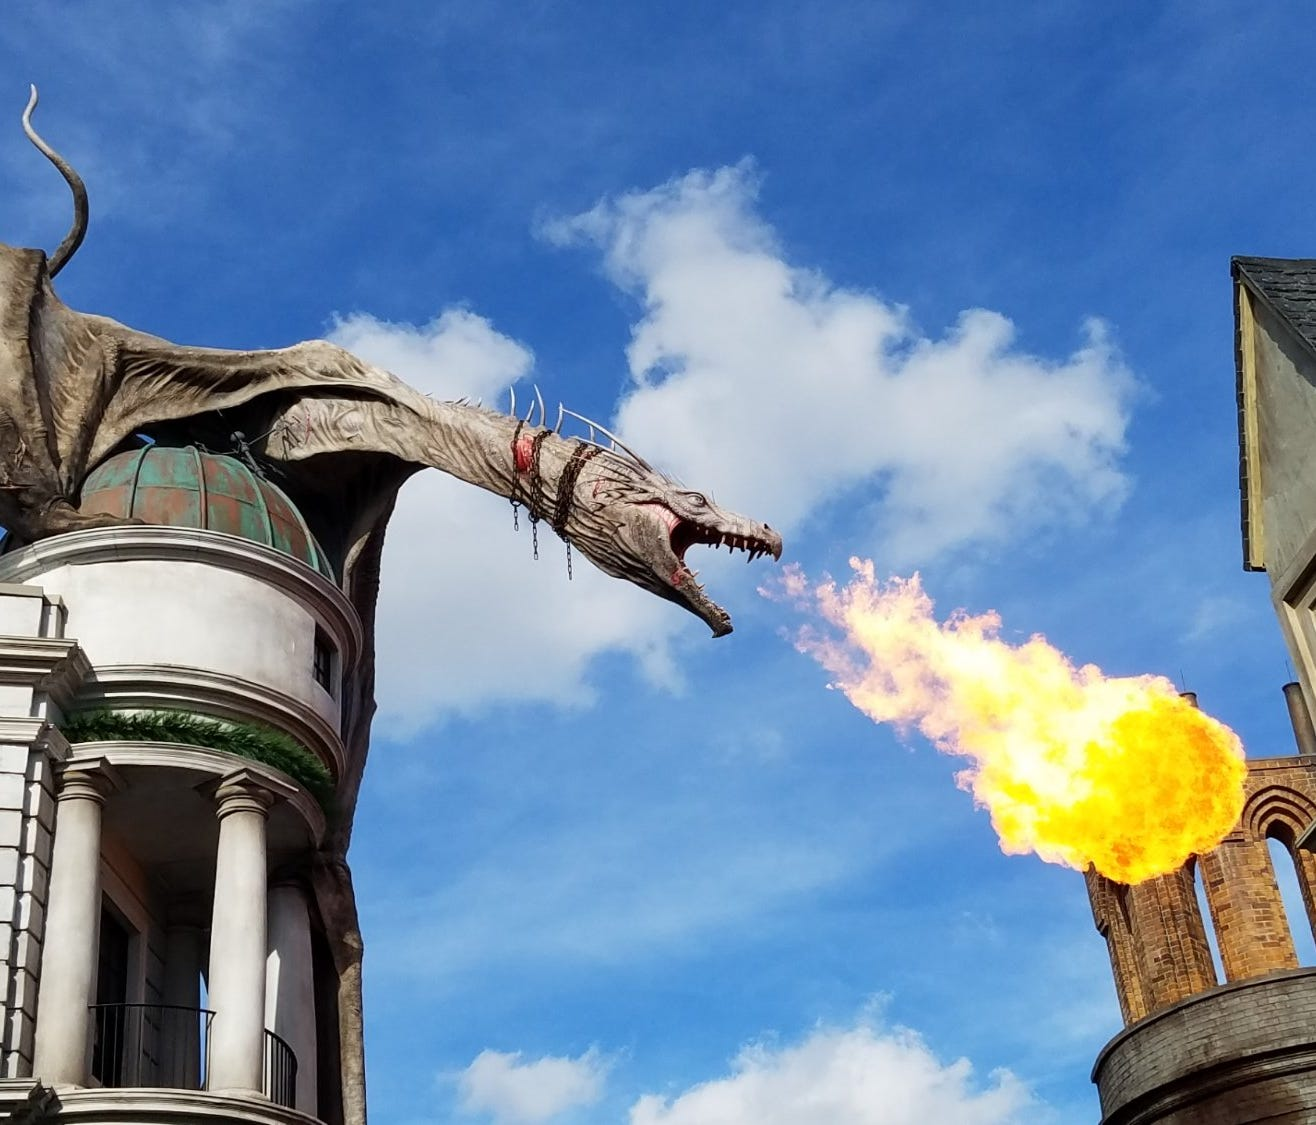 4. Universal Studios Florida – Orlando, Florida: Home of Universal Studios and Islands of Adventure, this park is full of entertainment and nightlife alike along the CityWalk, where travelers can explore rides like The Simpsons and Jimmy Fallon Race